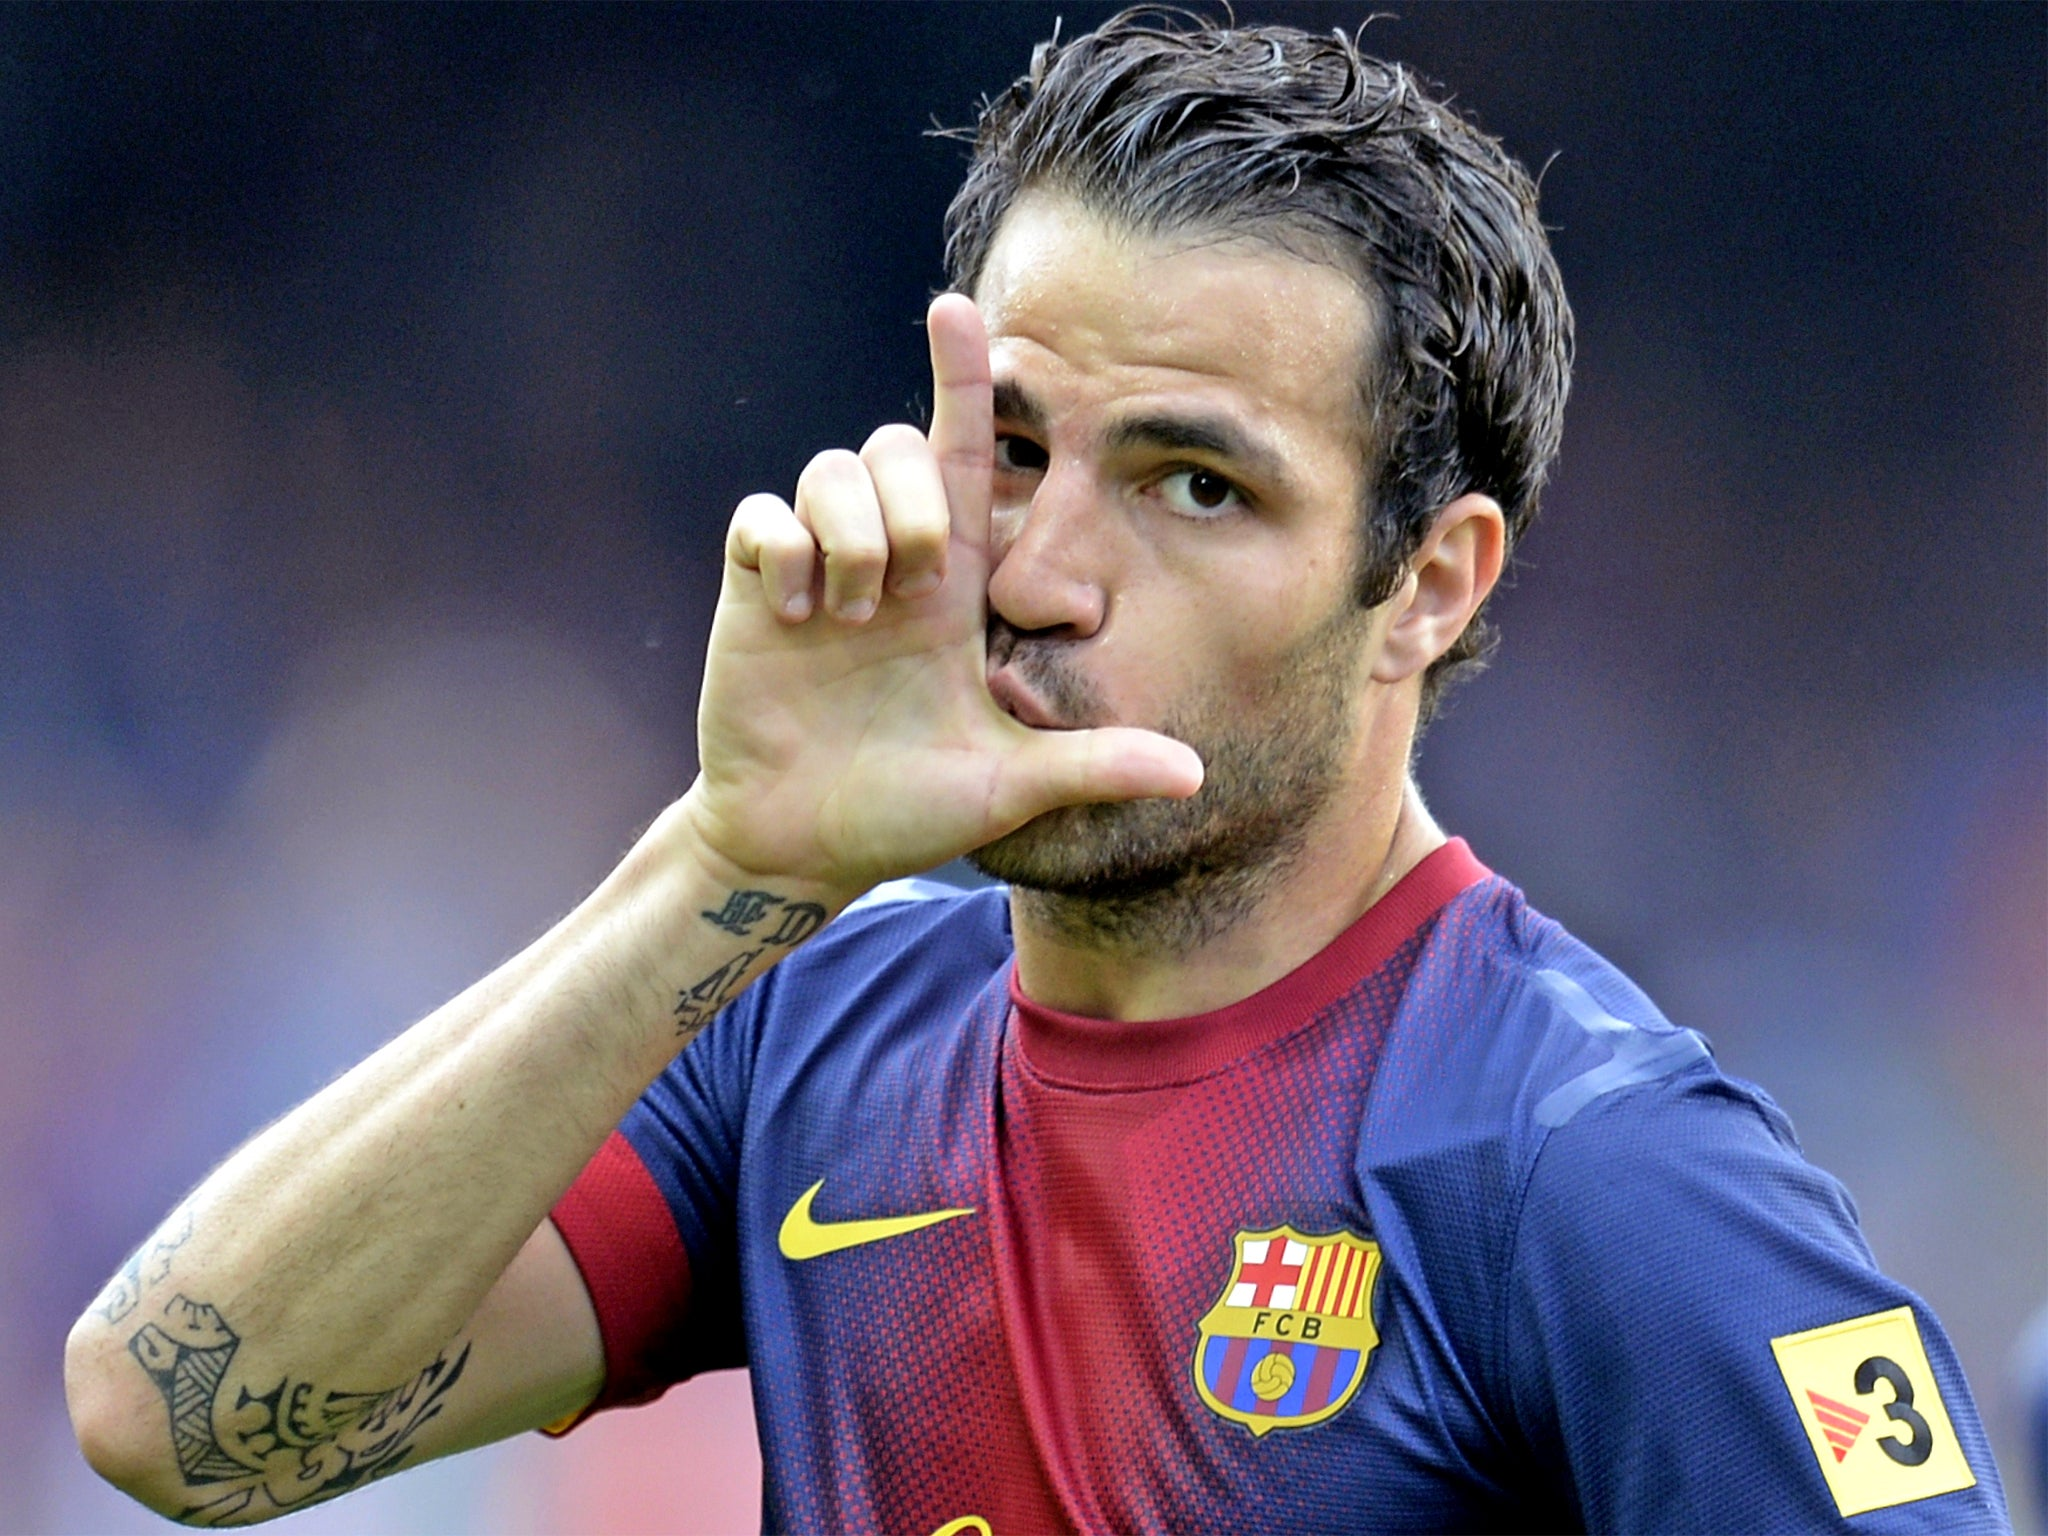 transfer news barcelona midfielder cesc fabregas wins case to transfer news barcelona midfielder cesc fabregas wins case to purchase london home but will he be returning to arsenal the independent